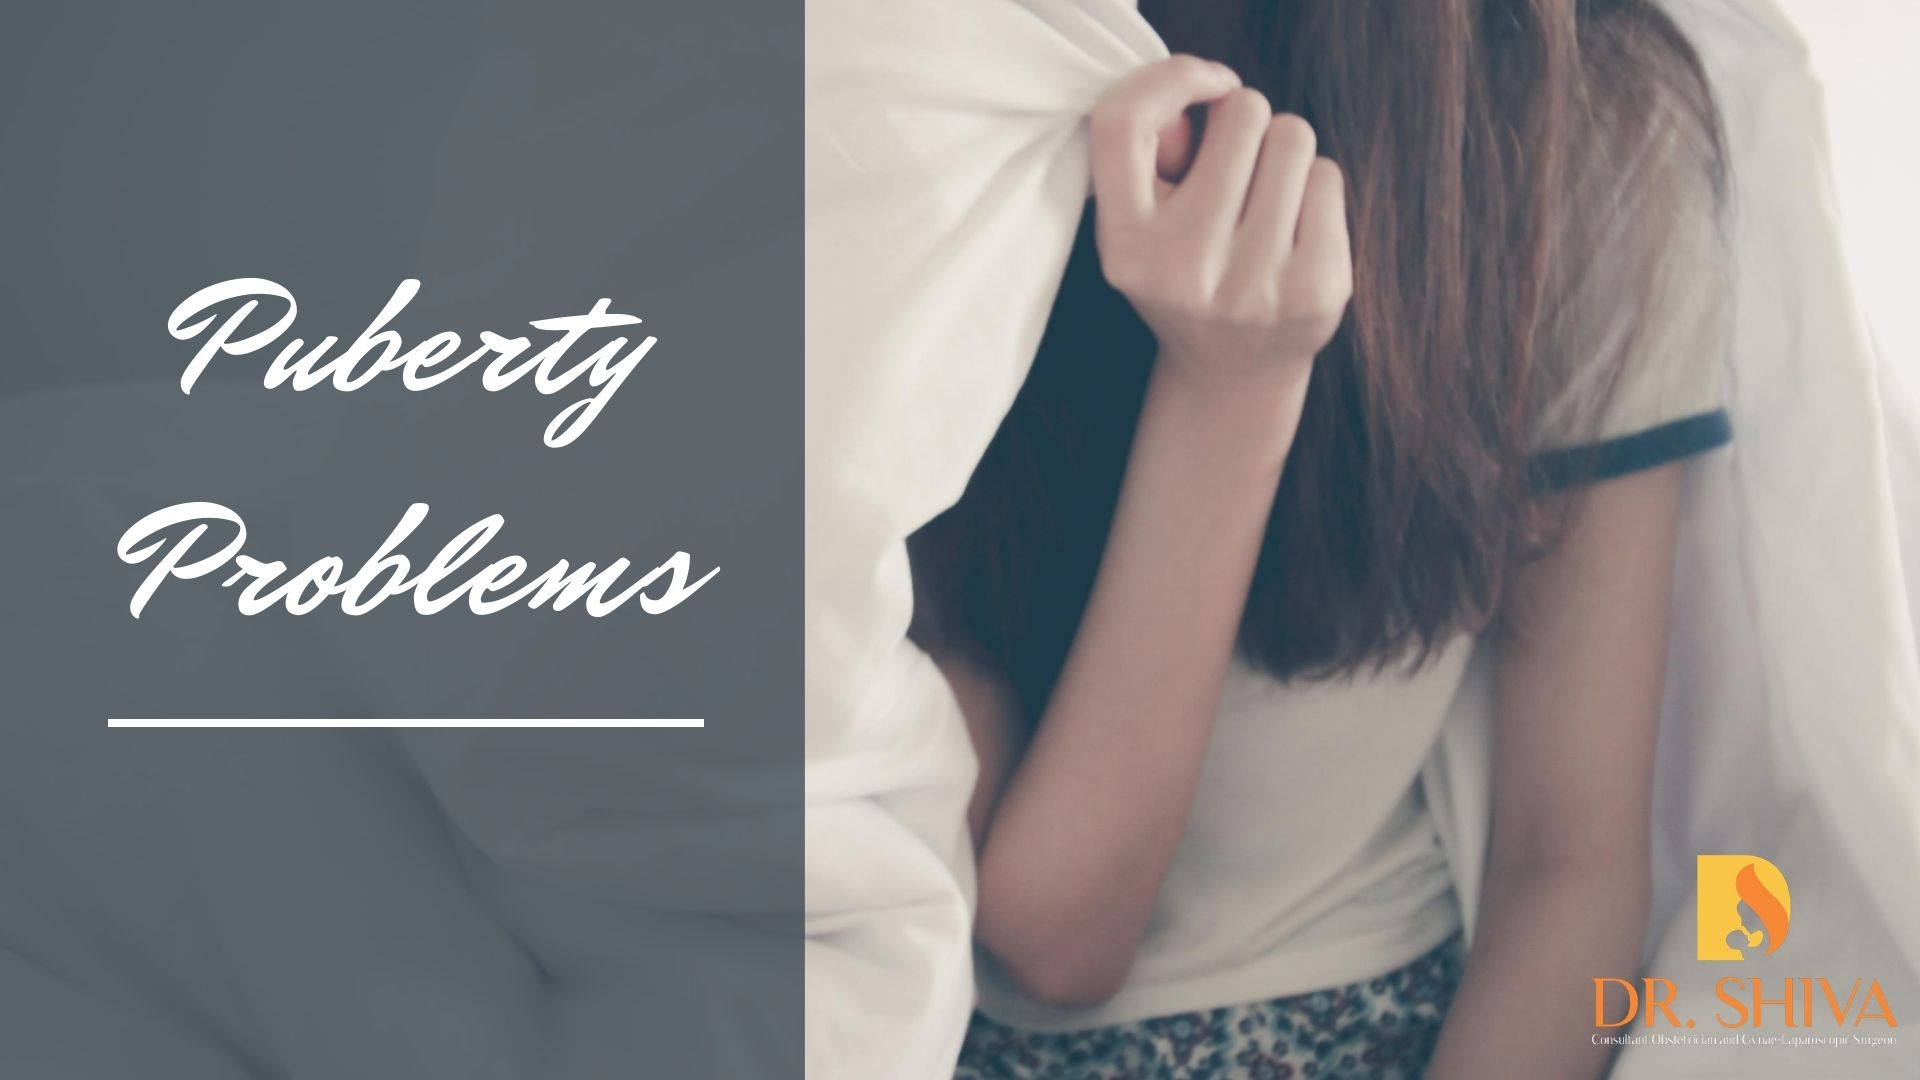 Puberty Problems